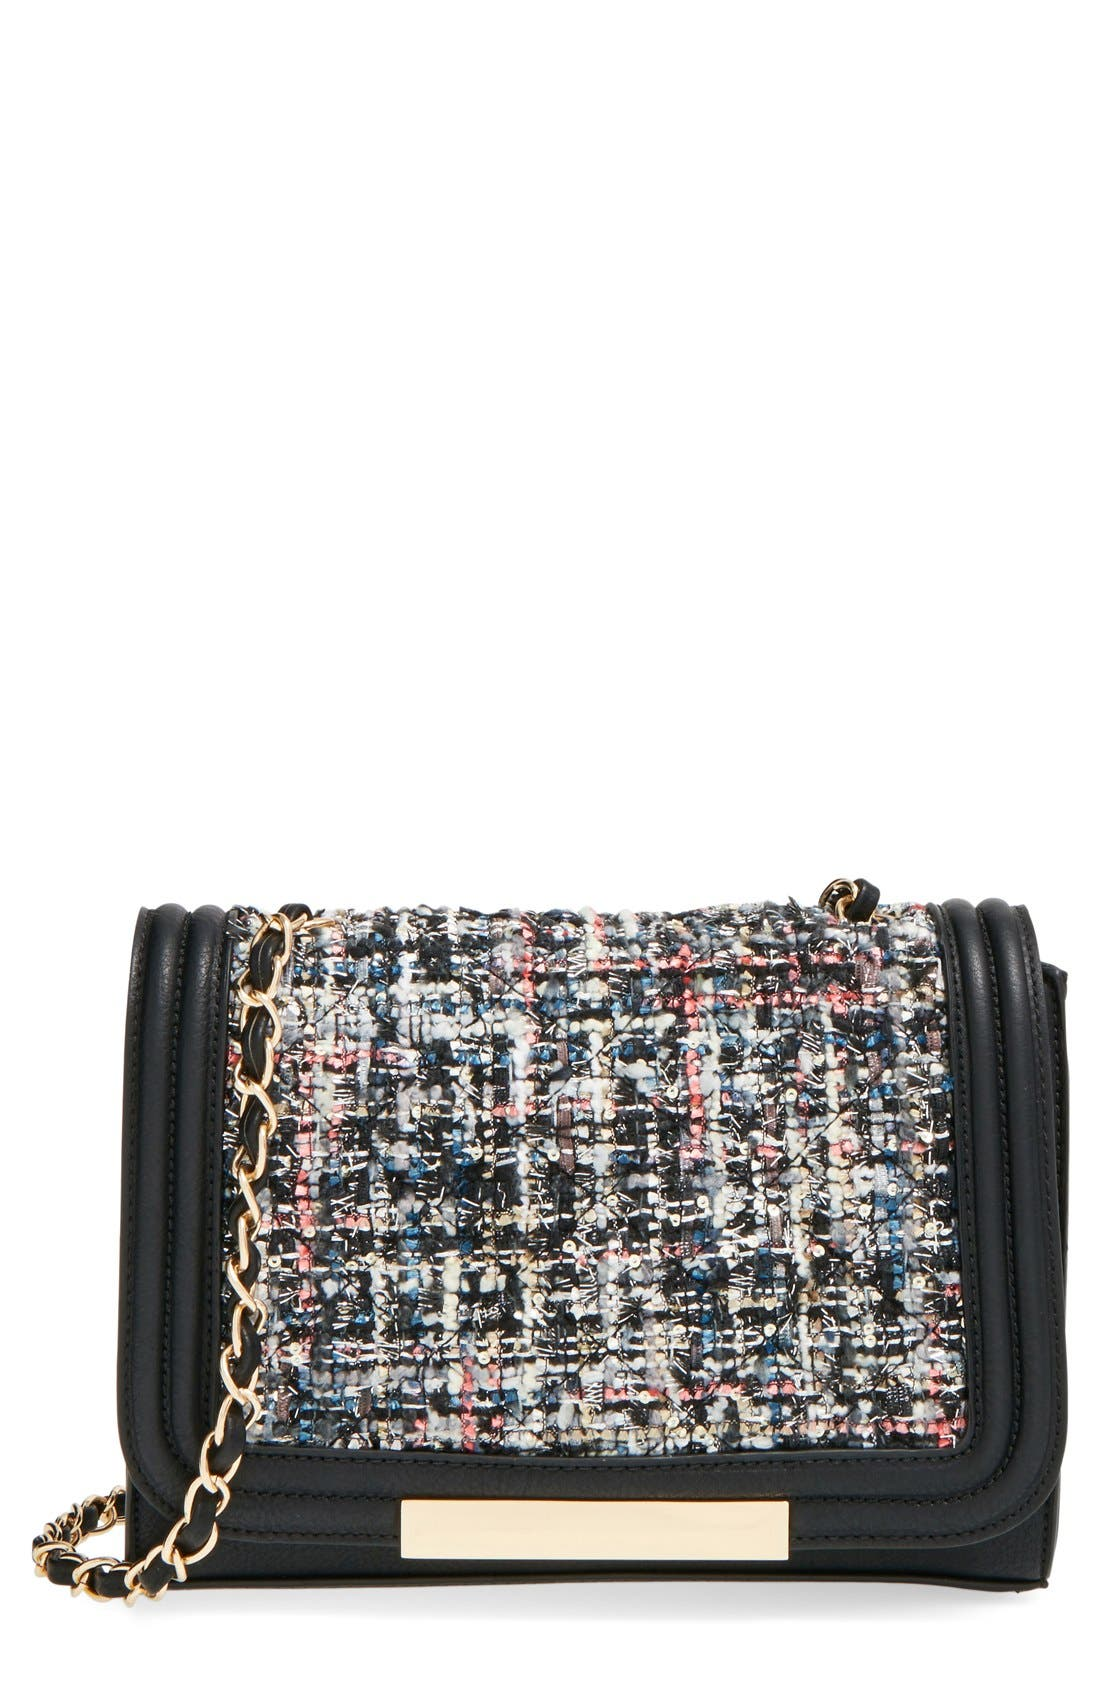 Main Image - Sole Society 'Celeste' Quilted Sequin Crossbody Bag